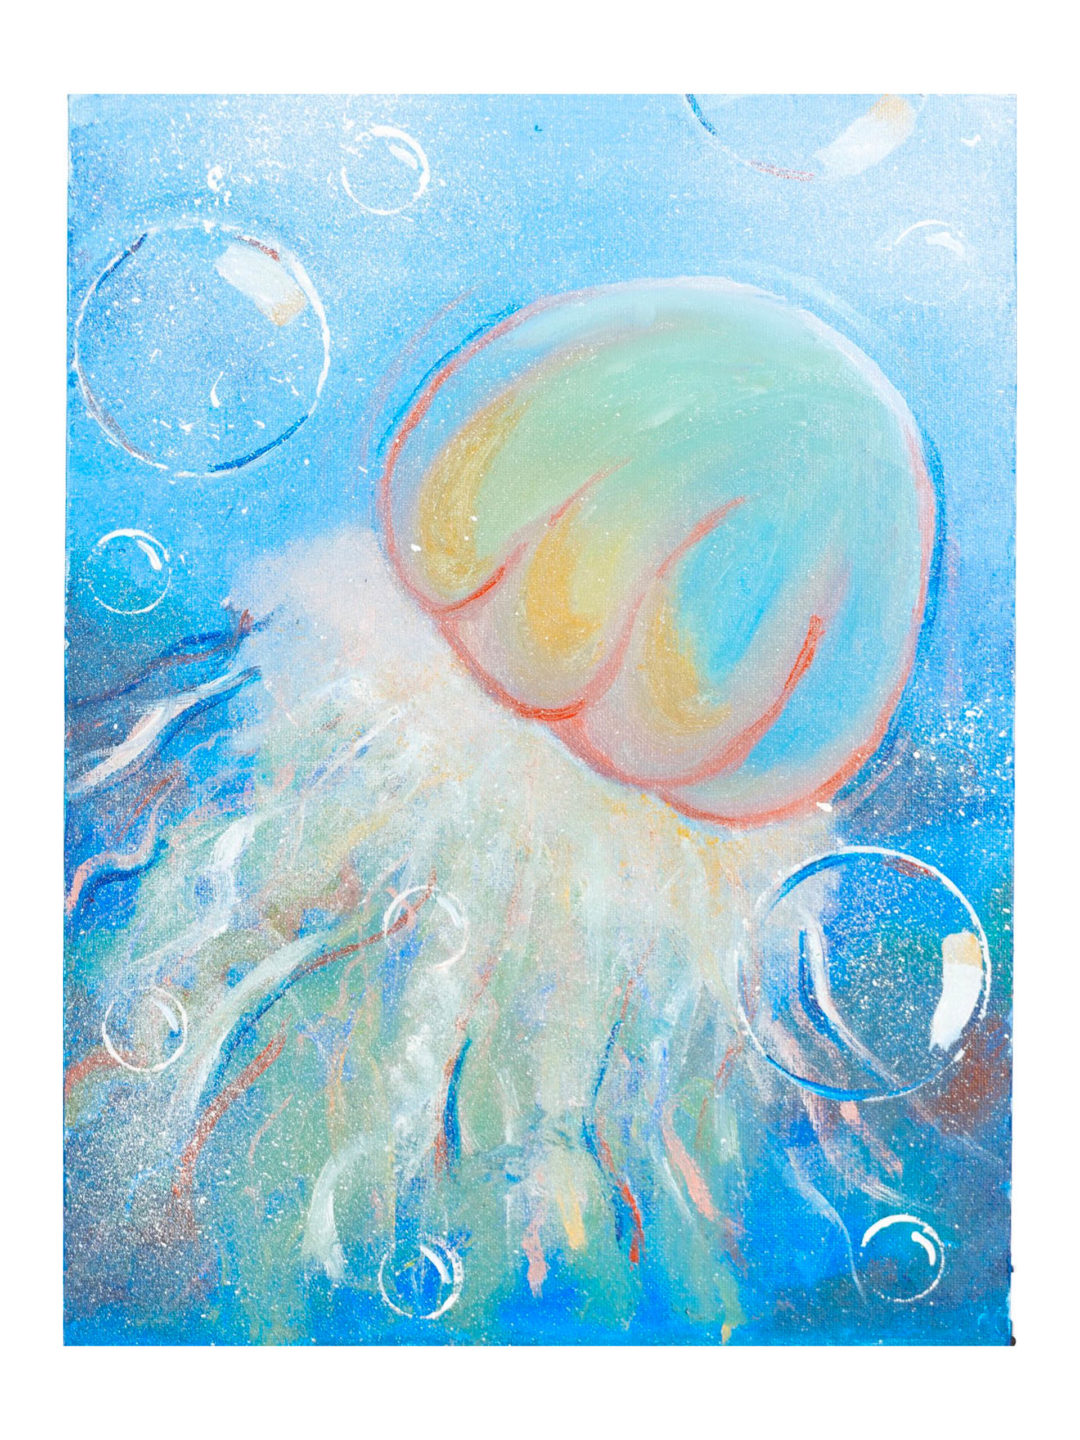 This painting was painted on a canvas using thick acrylic paint and detailed brushwork, this painting also uses circular objects for shape work. This painting uses blues for the water, red, orange, yellow and blue for the head of the jellyfish, and the same colors for the tail of the jellyfish including white. This painting also uses white, red, blue and yellow for the bubbles.